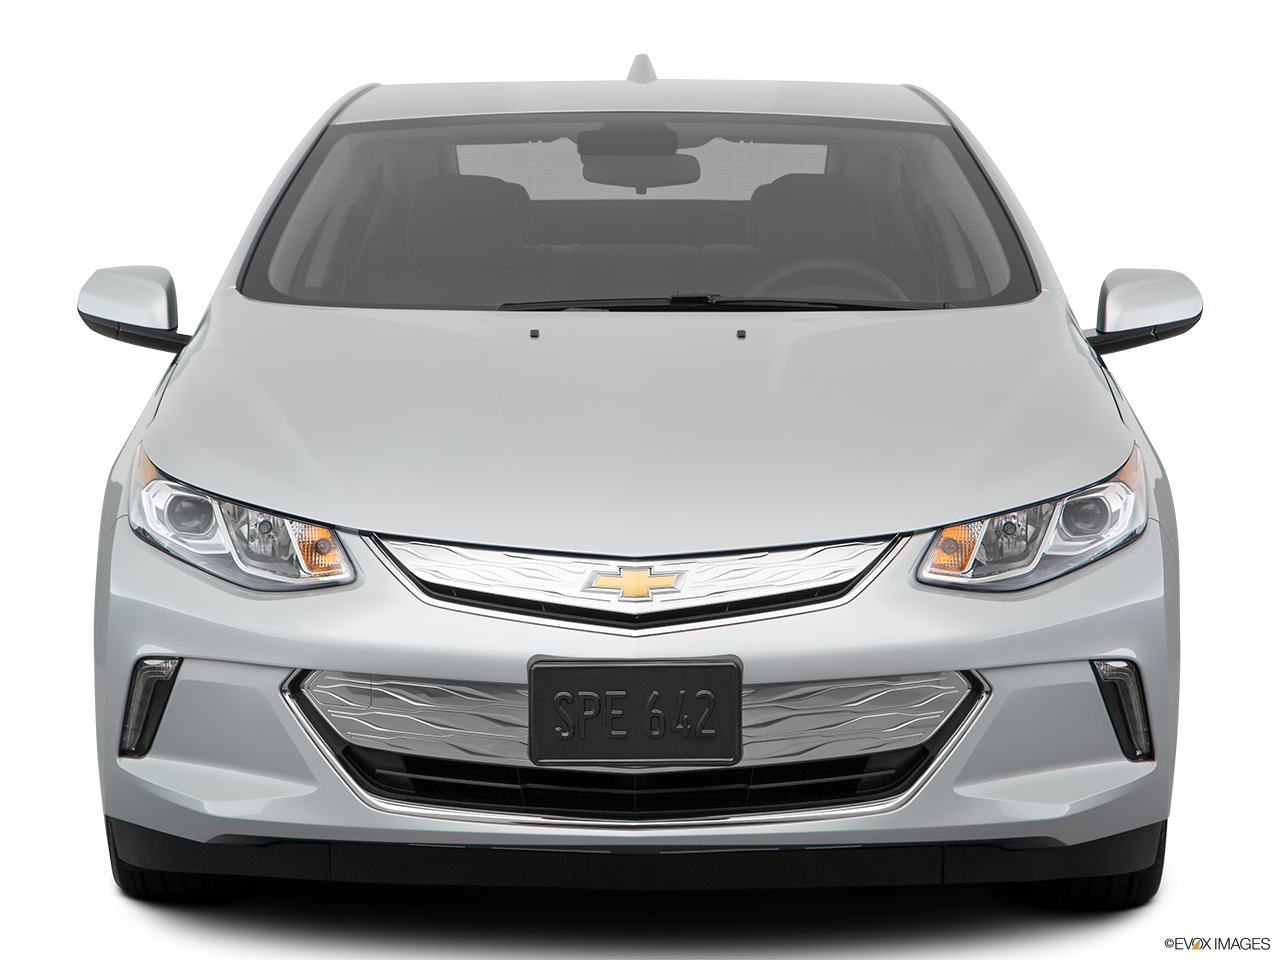 Front view of the Chevrolet Volt